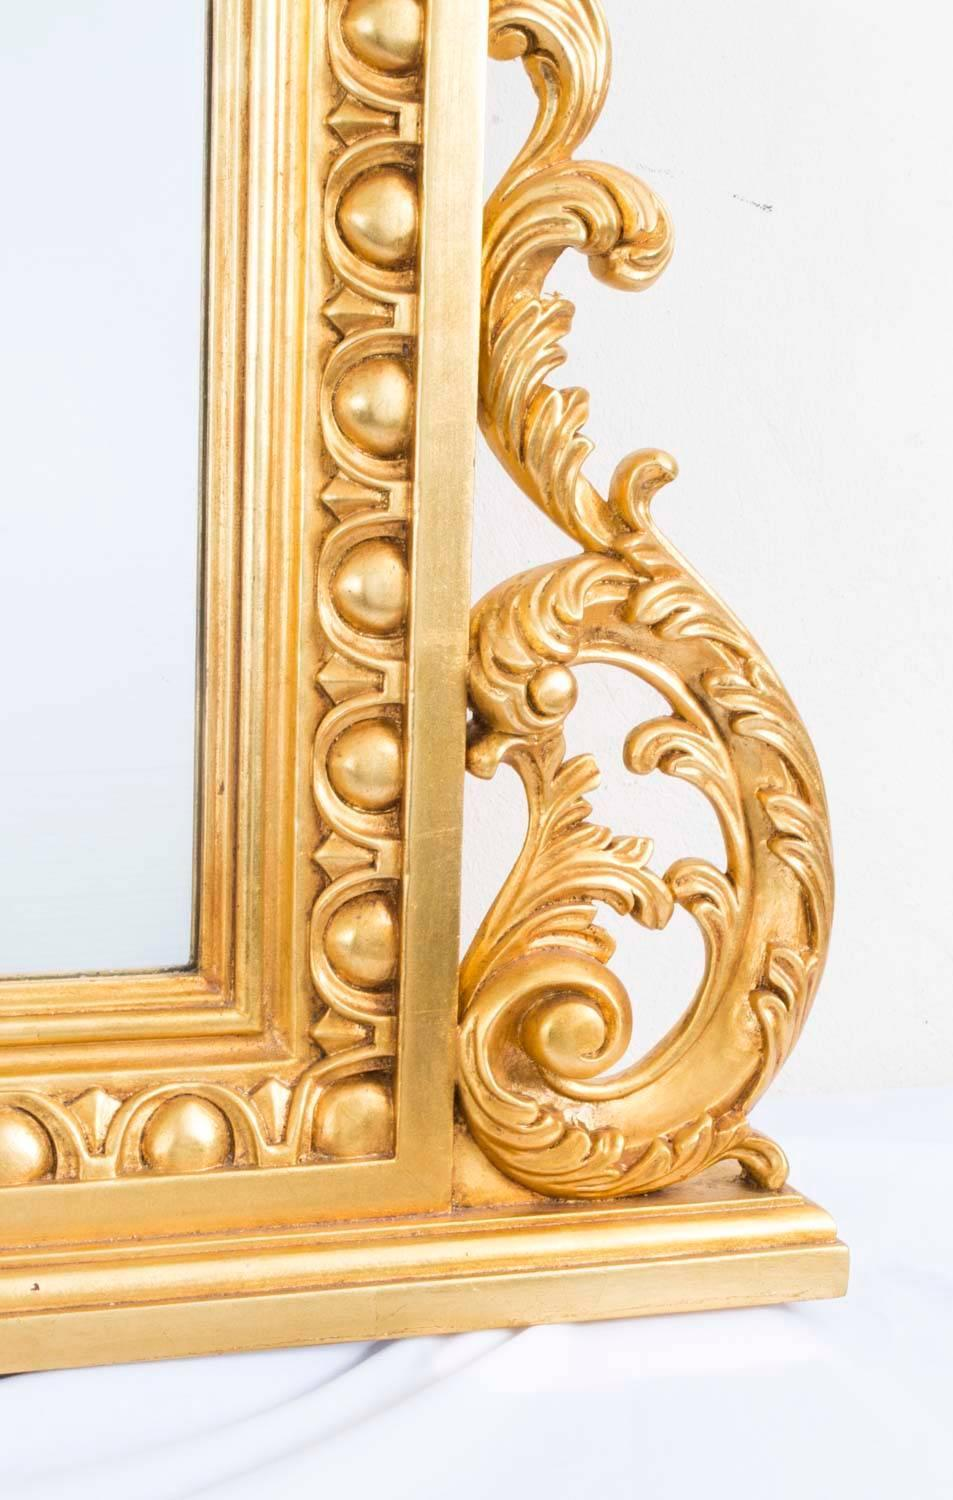 Decorative large ornate italian florentine mirror for sale Large wooden mirrors for sale